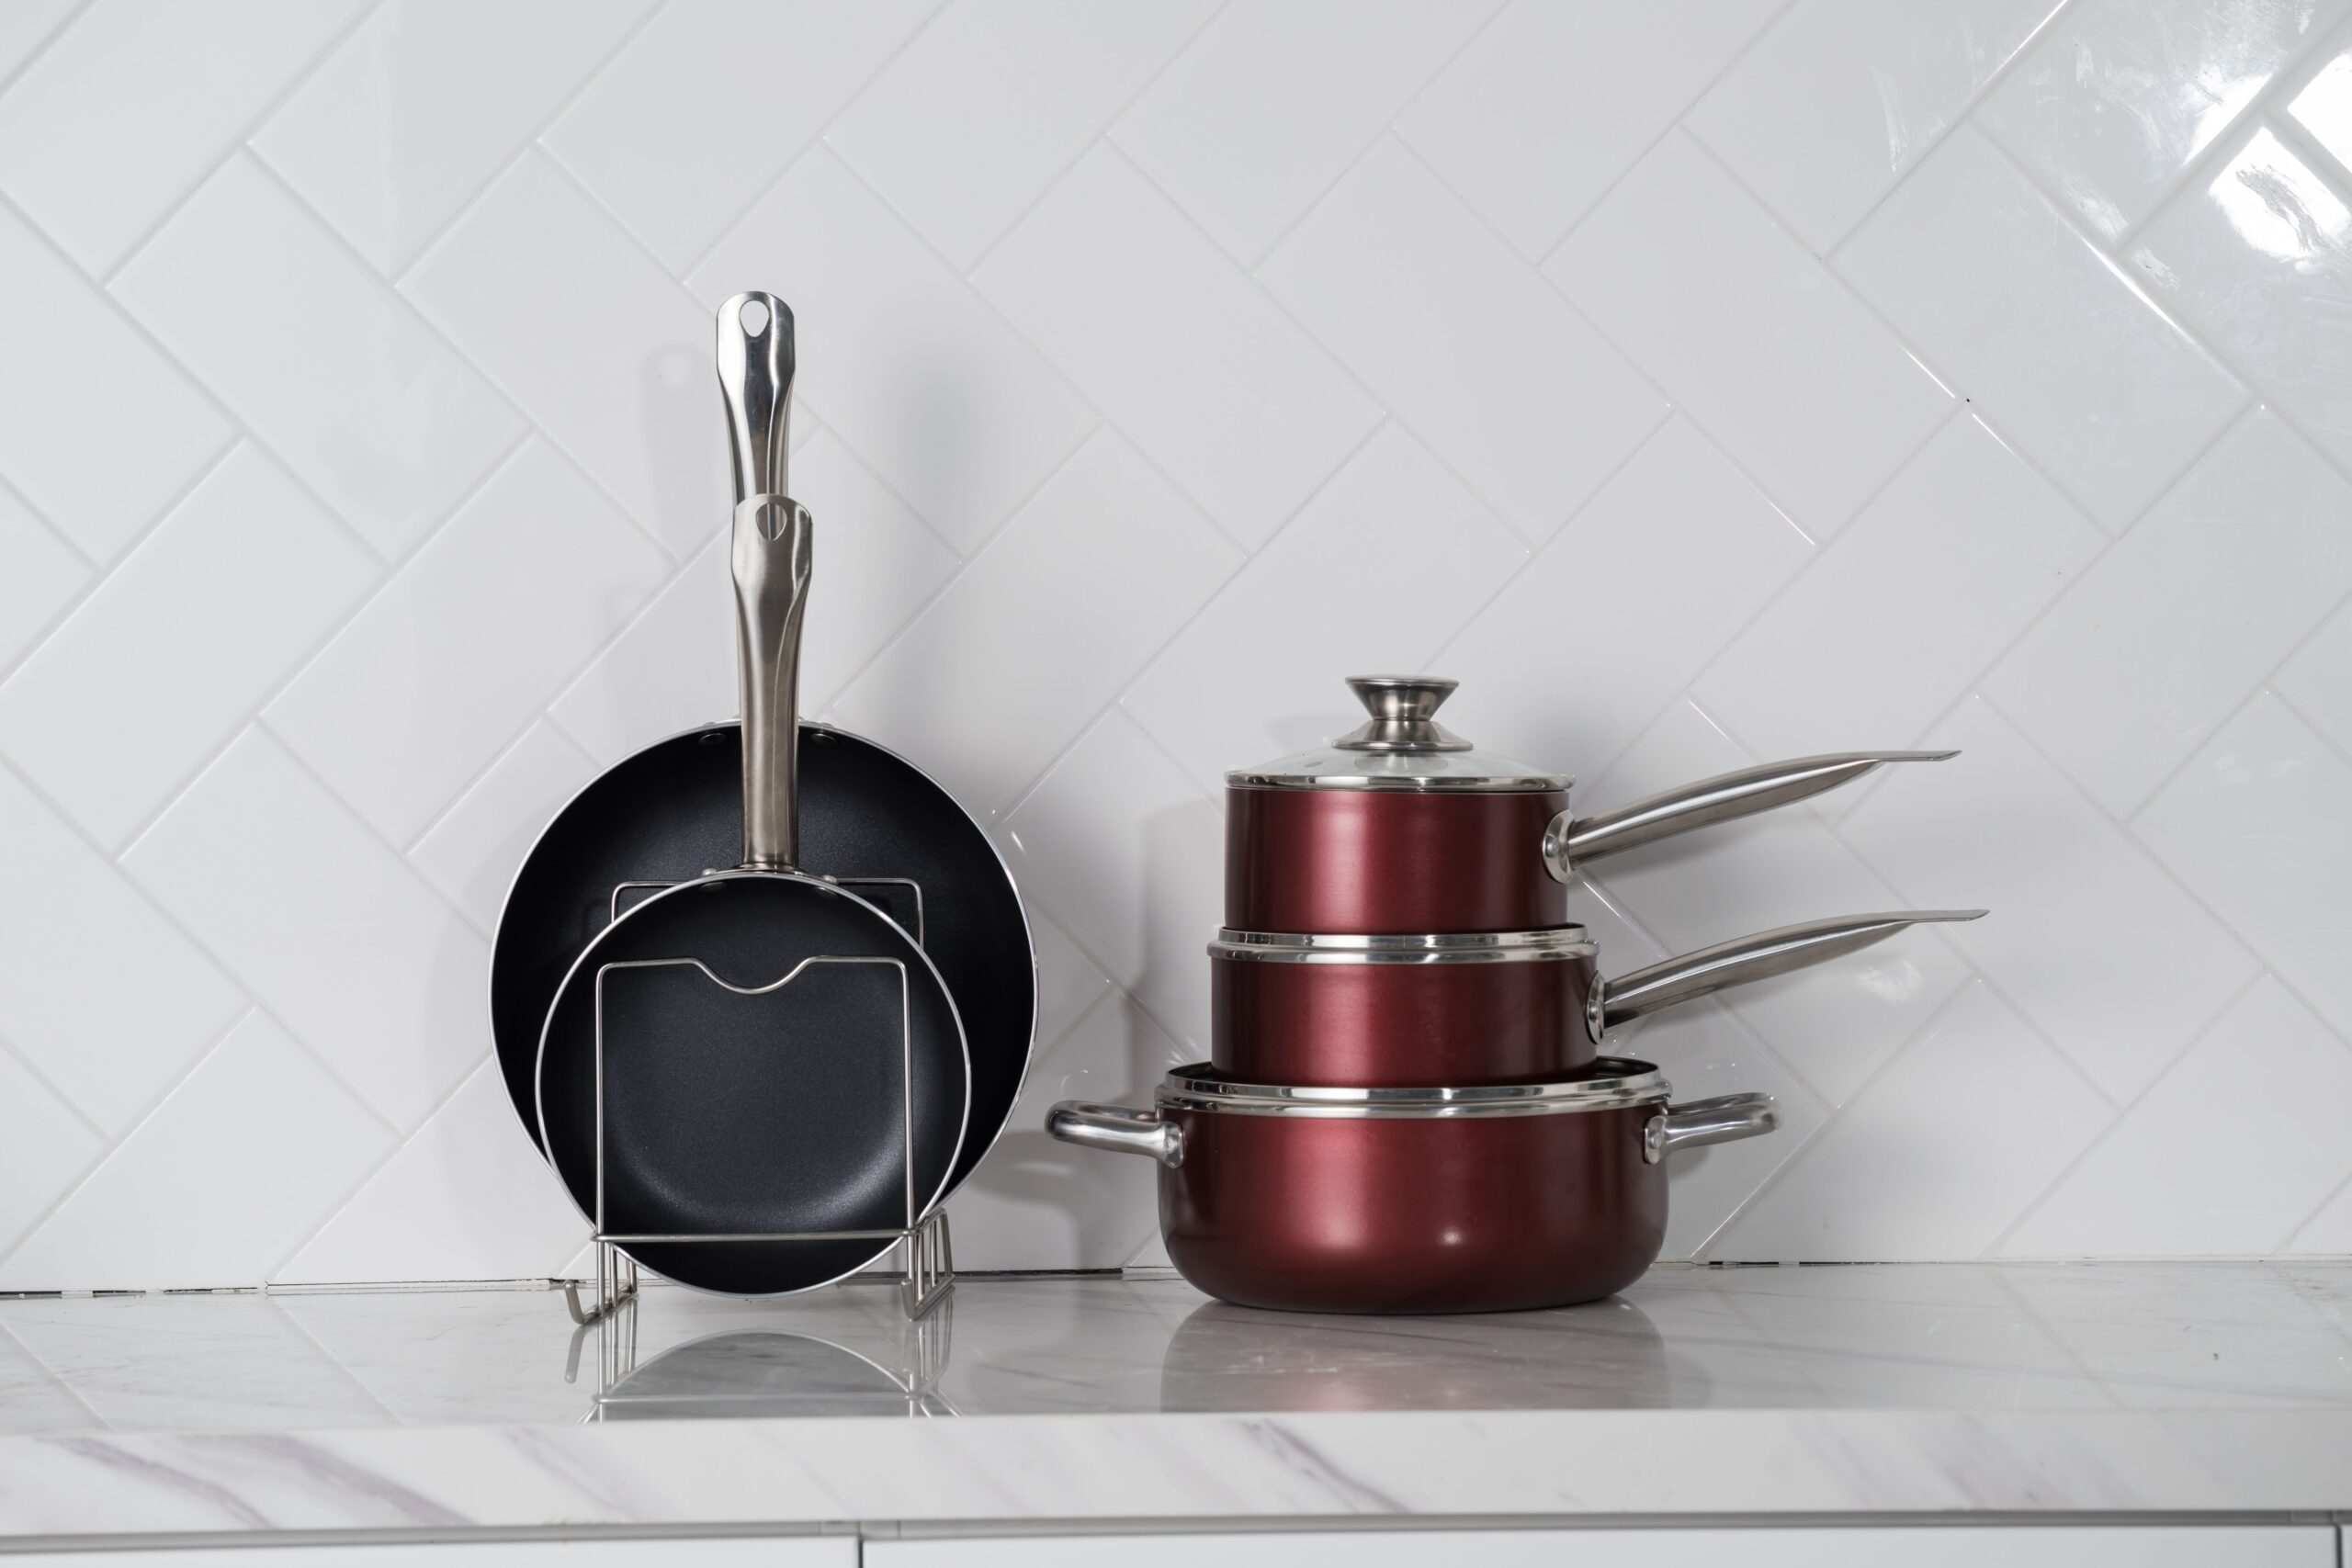 Which Durable Cookware is Worth the Most?